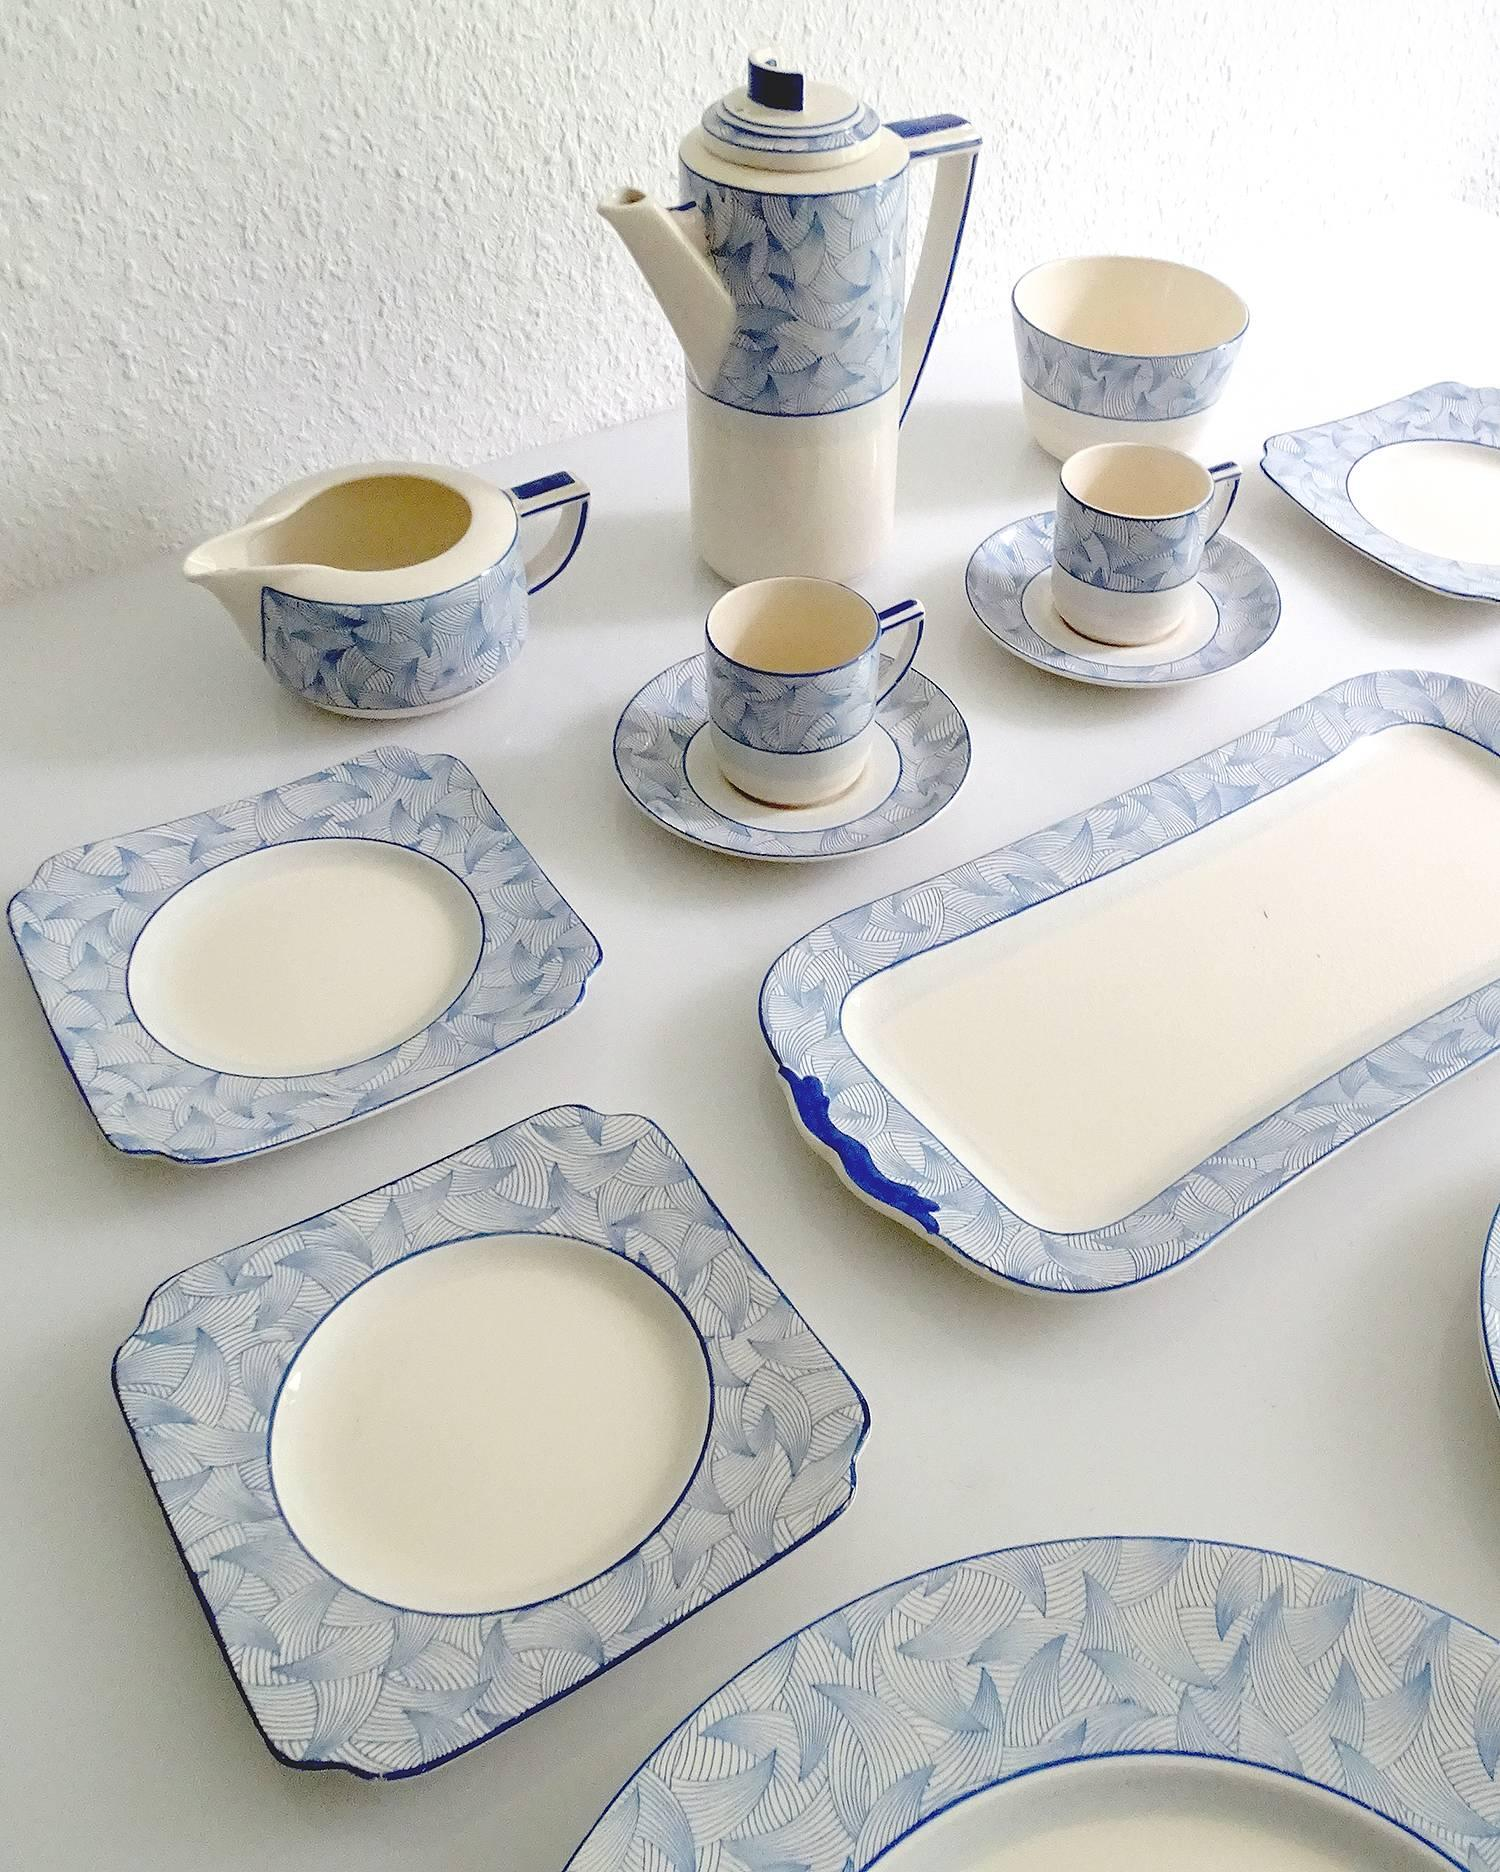 British 18 PCs Royal Doulton Art Deco Service Dinner Dinnerware Modernist Limoges Era For Sale & 18 PCs Royal Doulton Art Deco Service Dinner Dinnerware Modernist ...